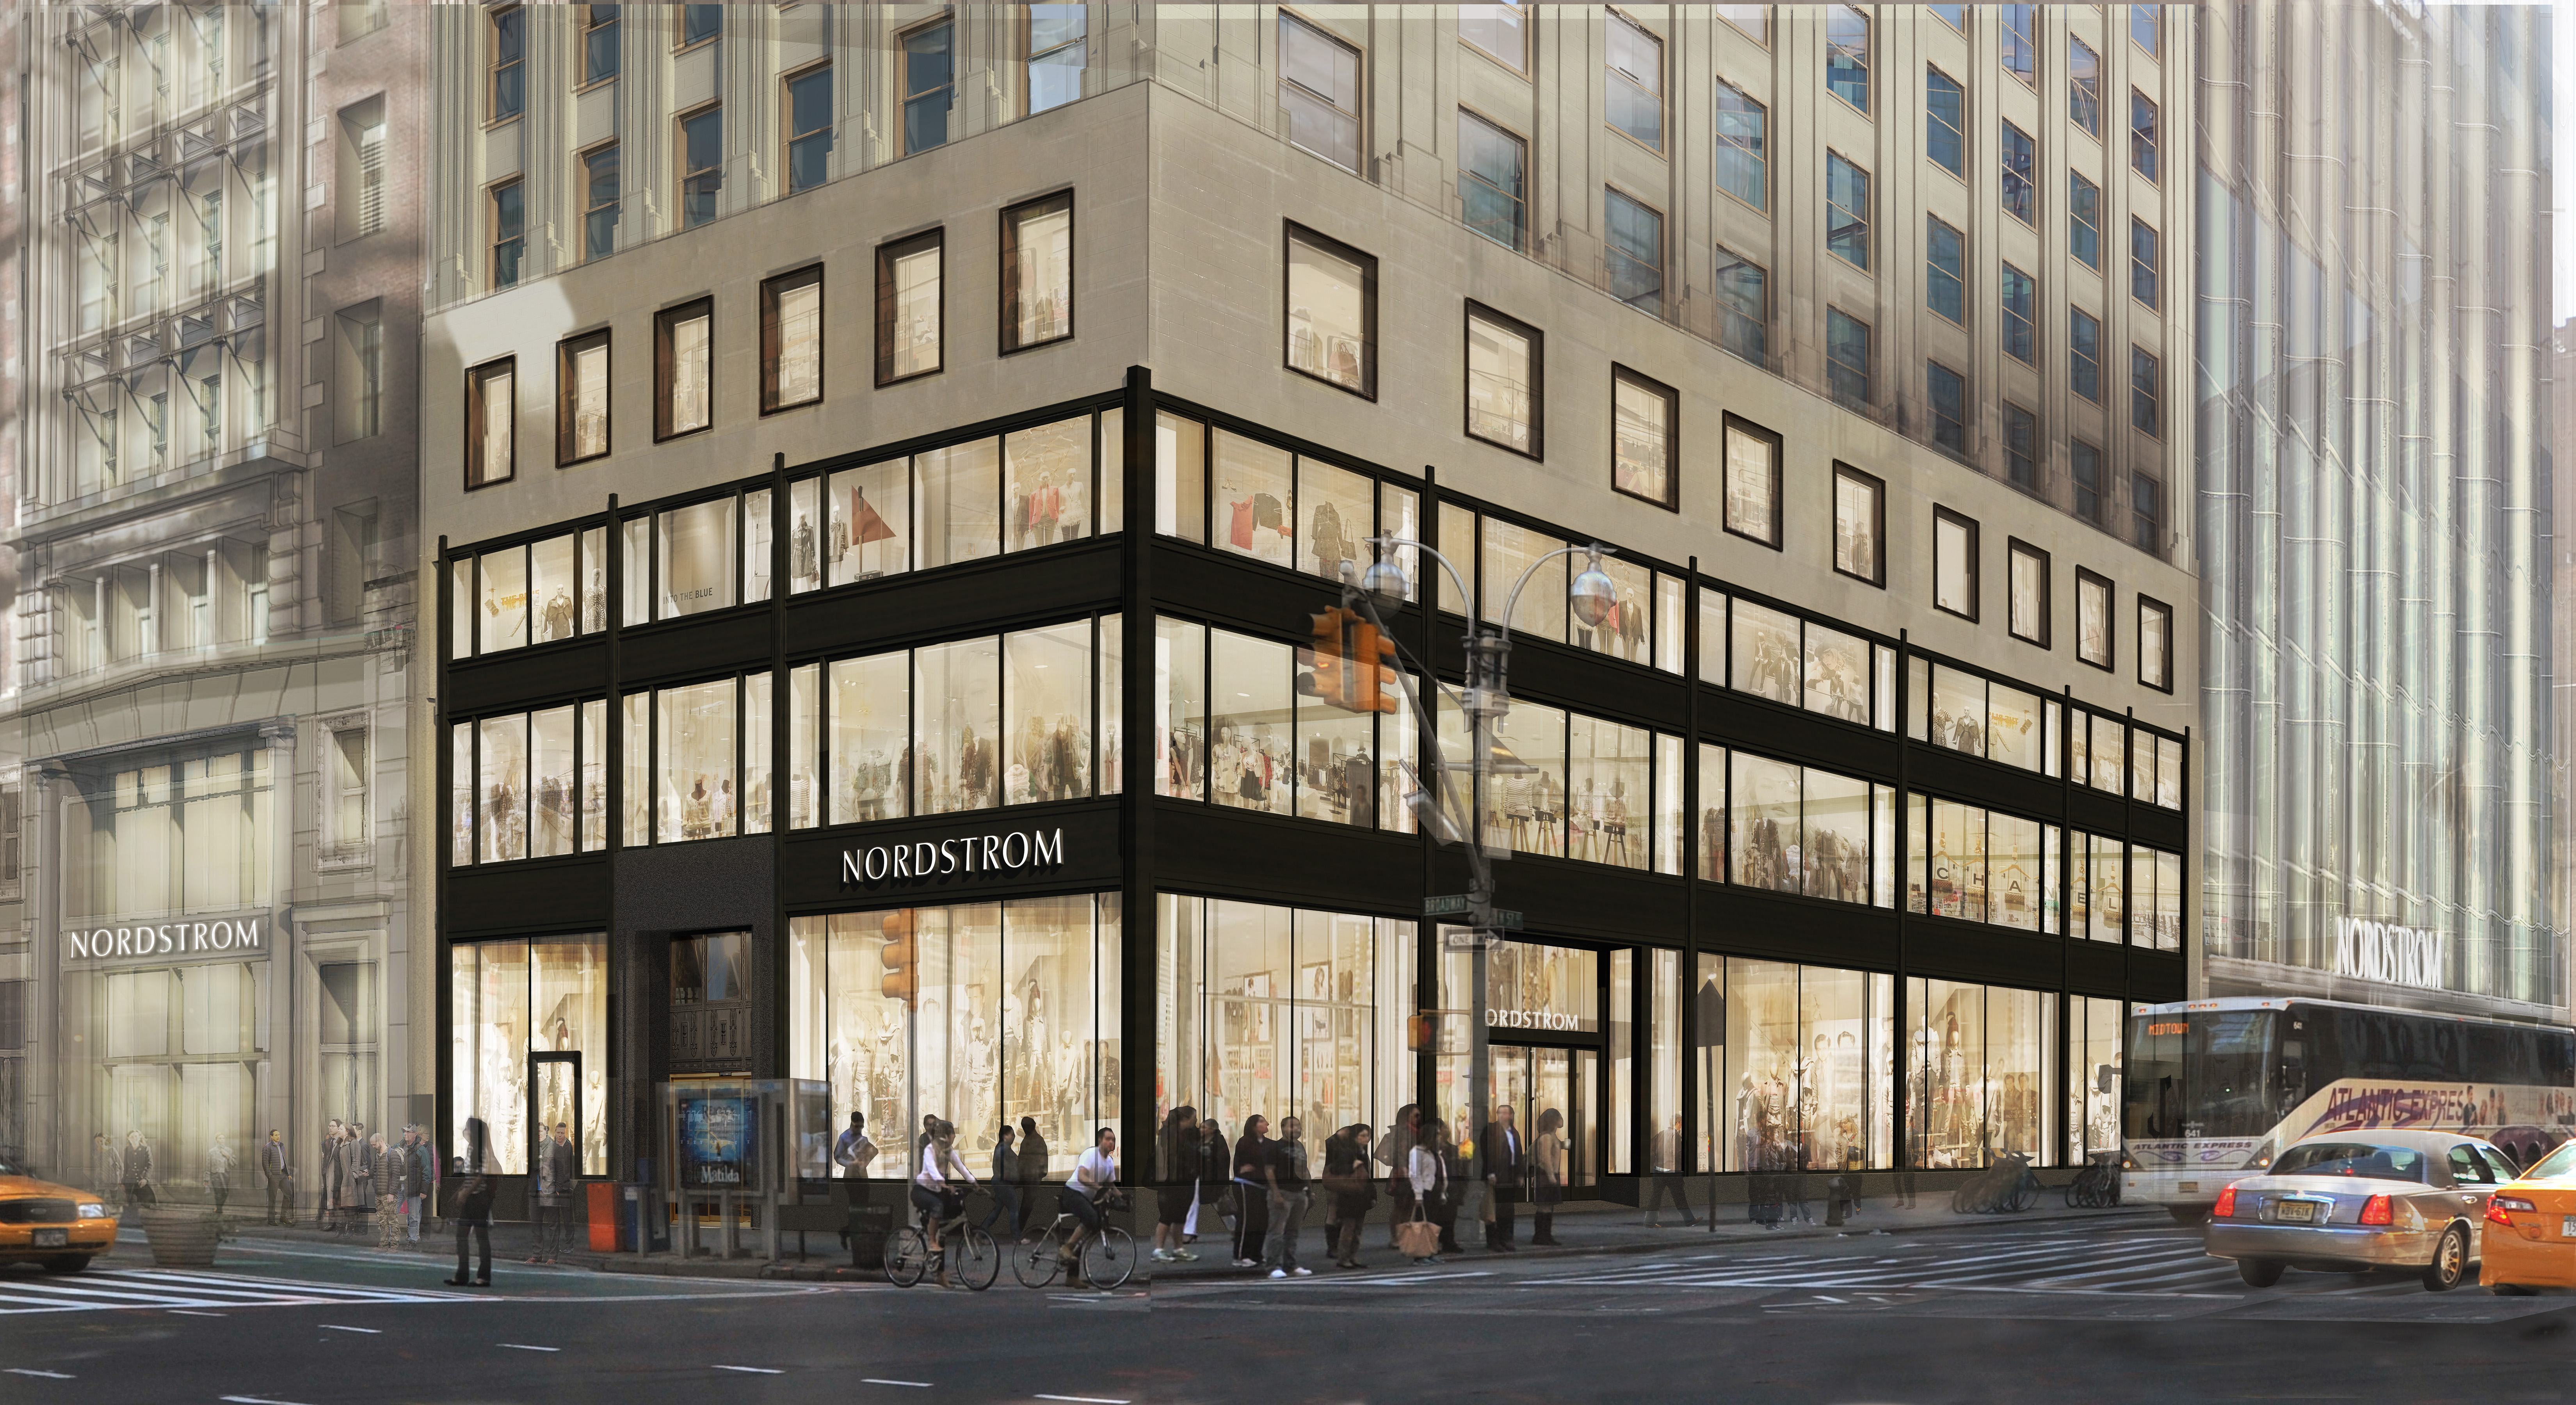 Nordstrom's new store is situated near Columbus Circle, in a neighborhood of New York that isn't necessarily known for its great shopping and might be a trek for some of its customers.